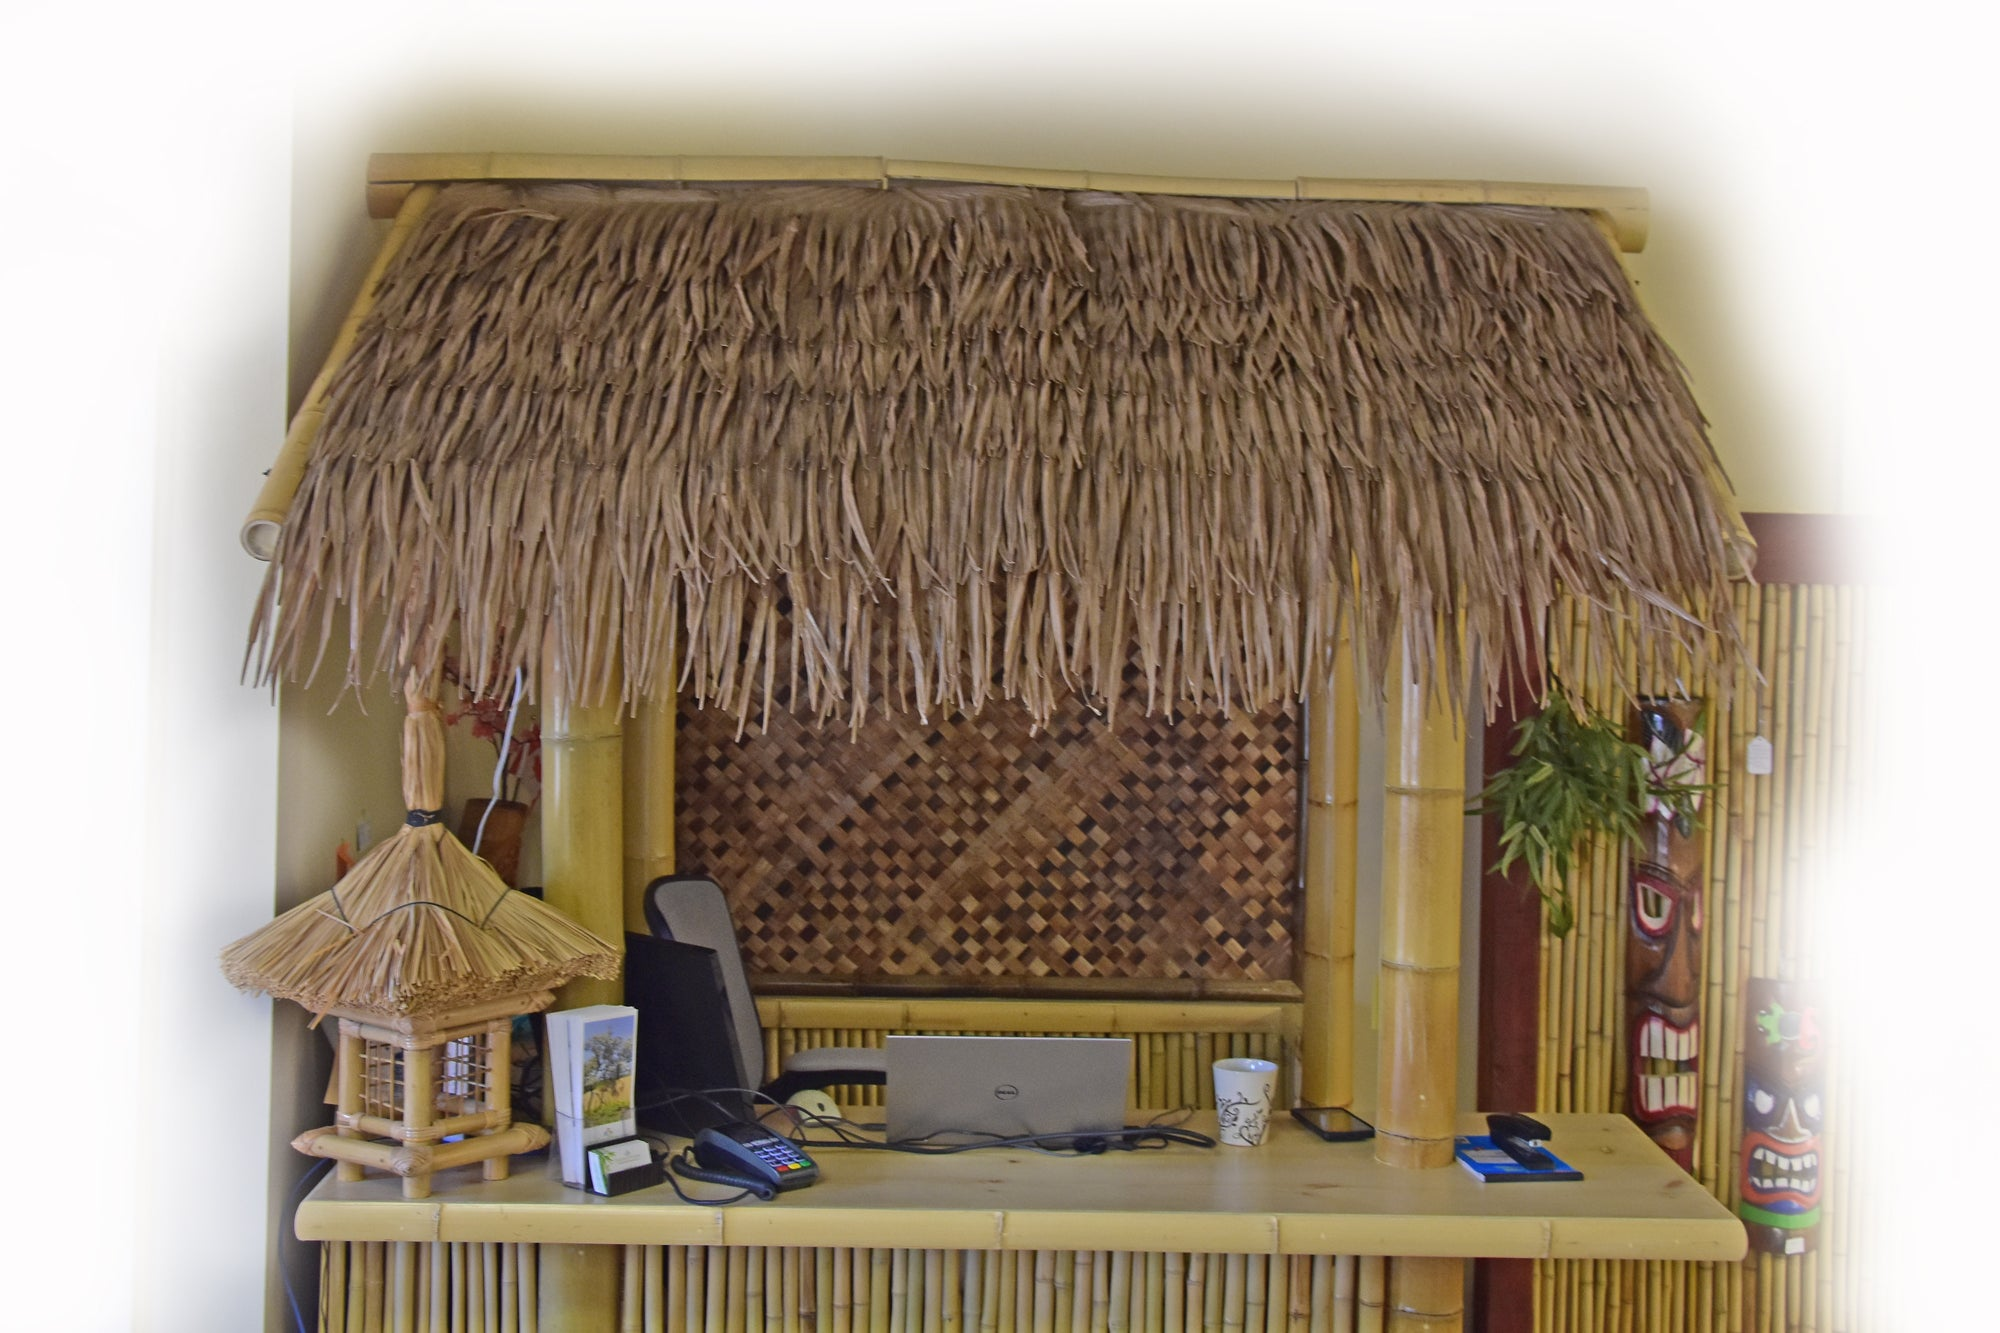 Synthetic Palm Thatch Roof Sheet 10 Pack - Bamboo Toronto Store